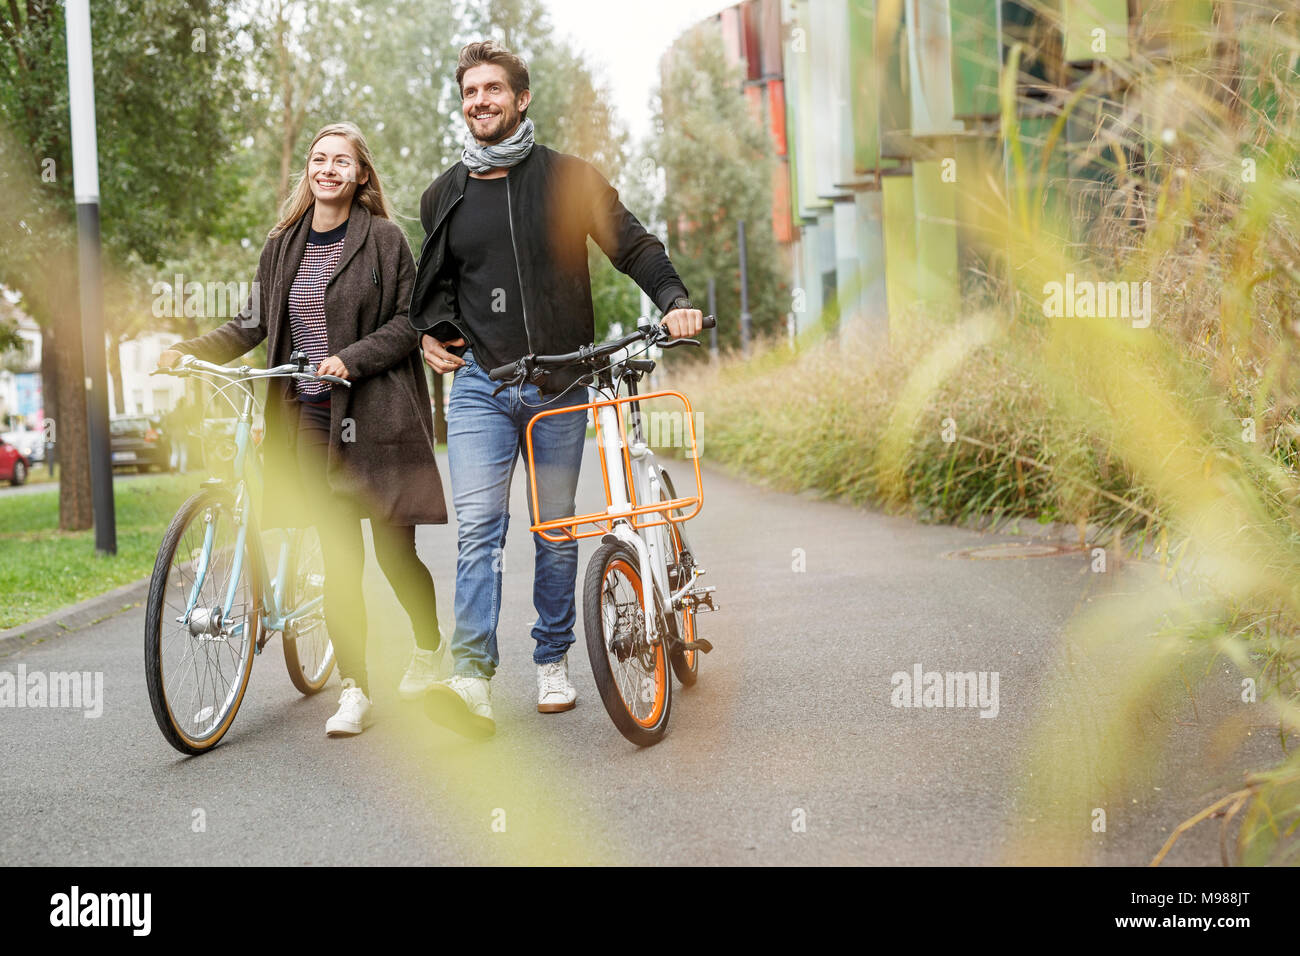 Smiling couple walking with bicycles on a lane - Stock Image